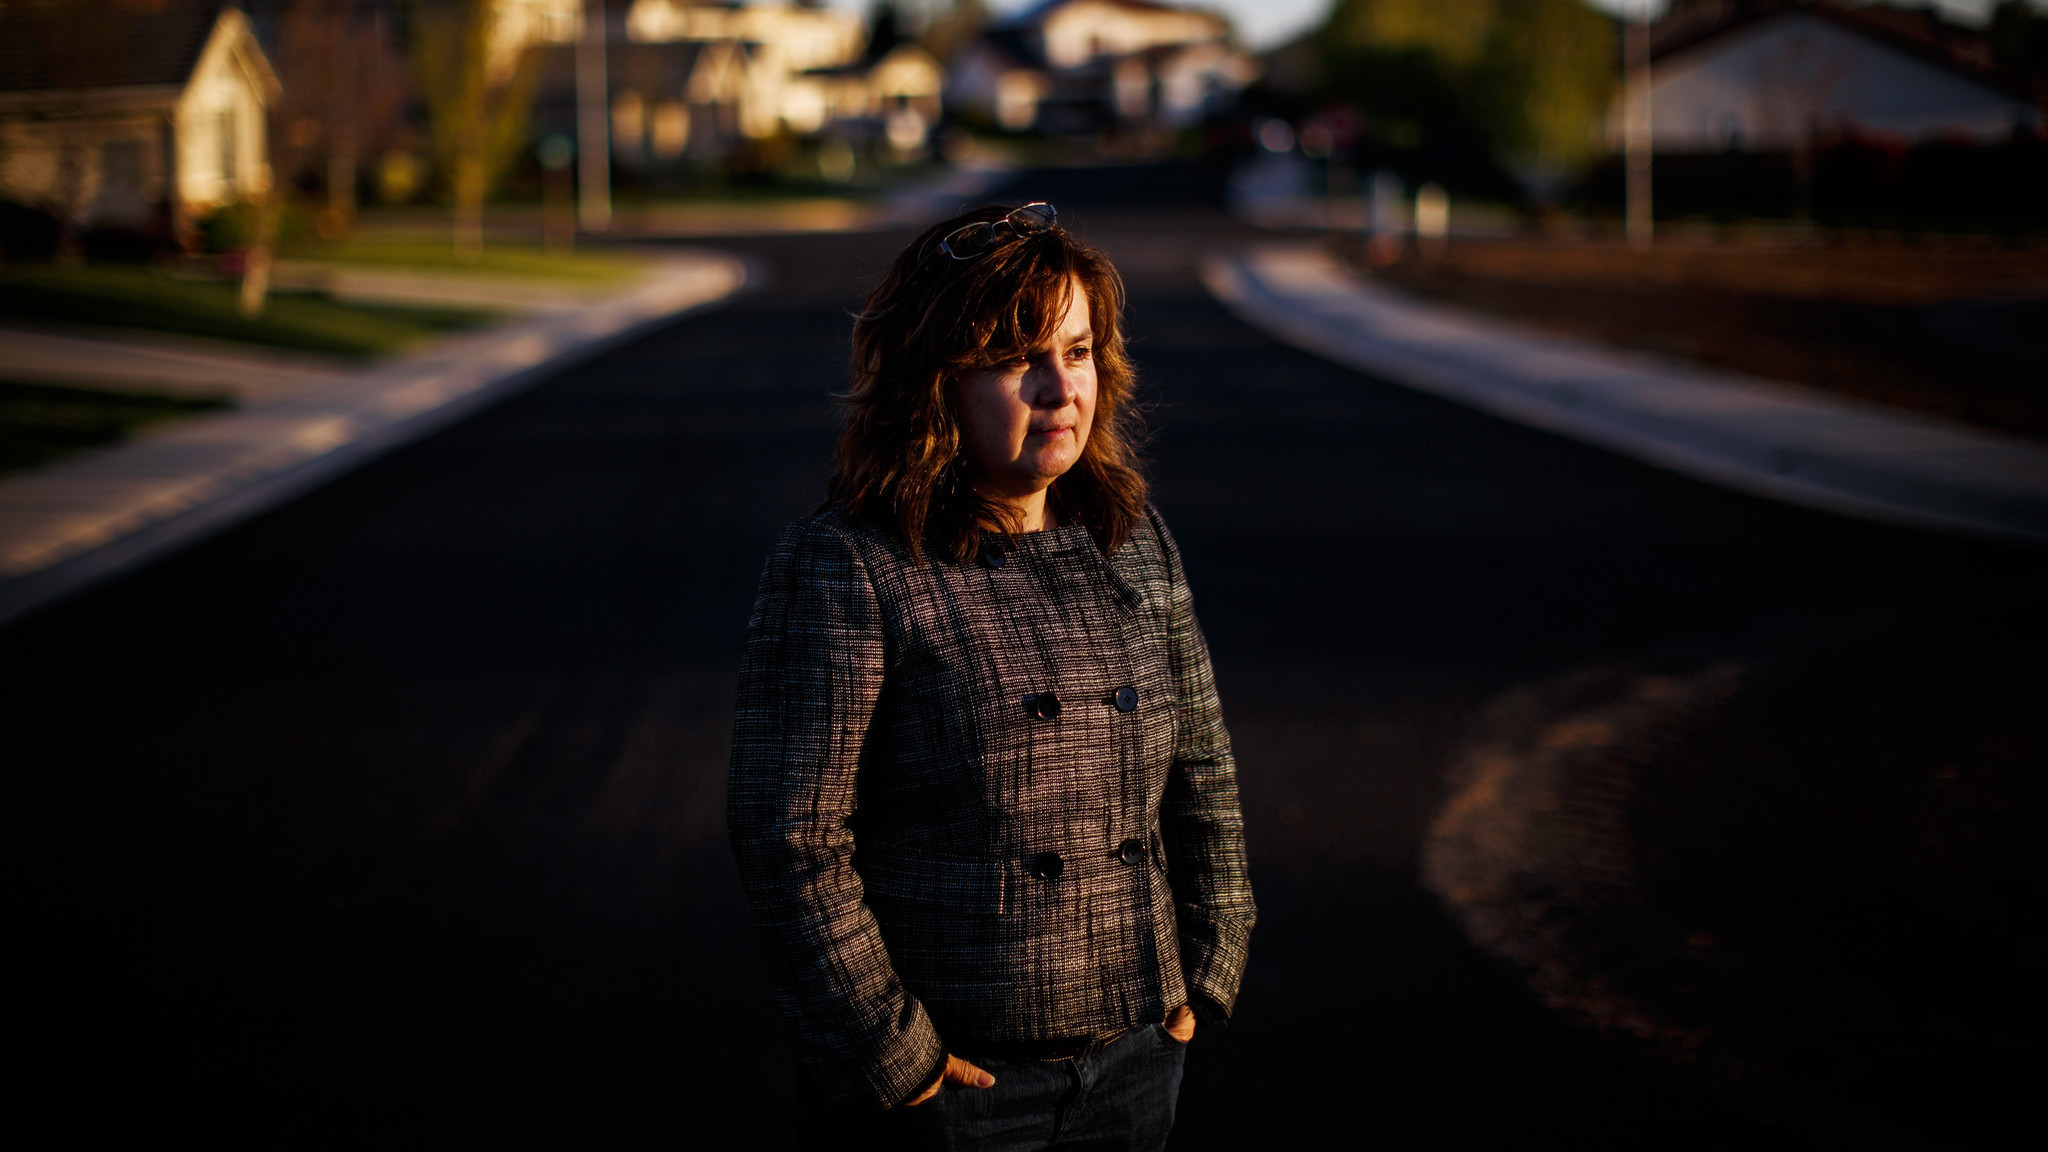 Giving driver's licenses to those here illegally transformed many lives. Then came Trump